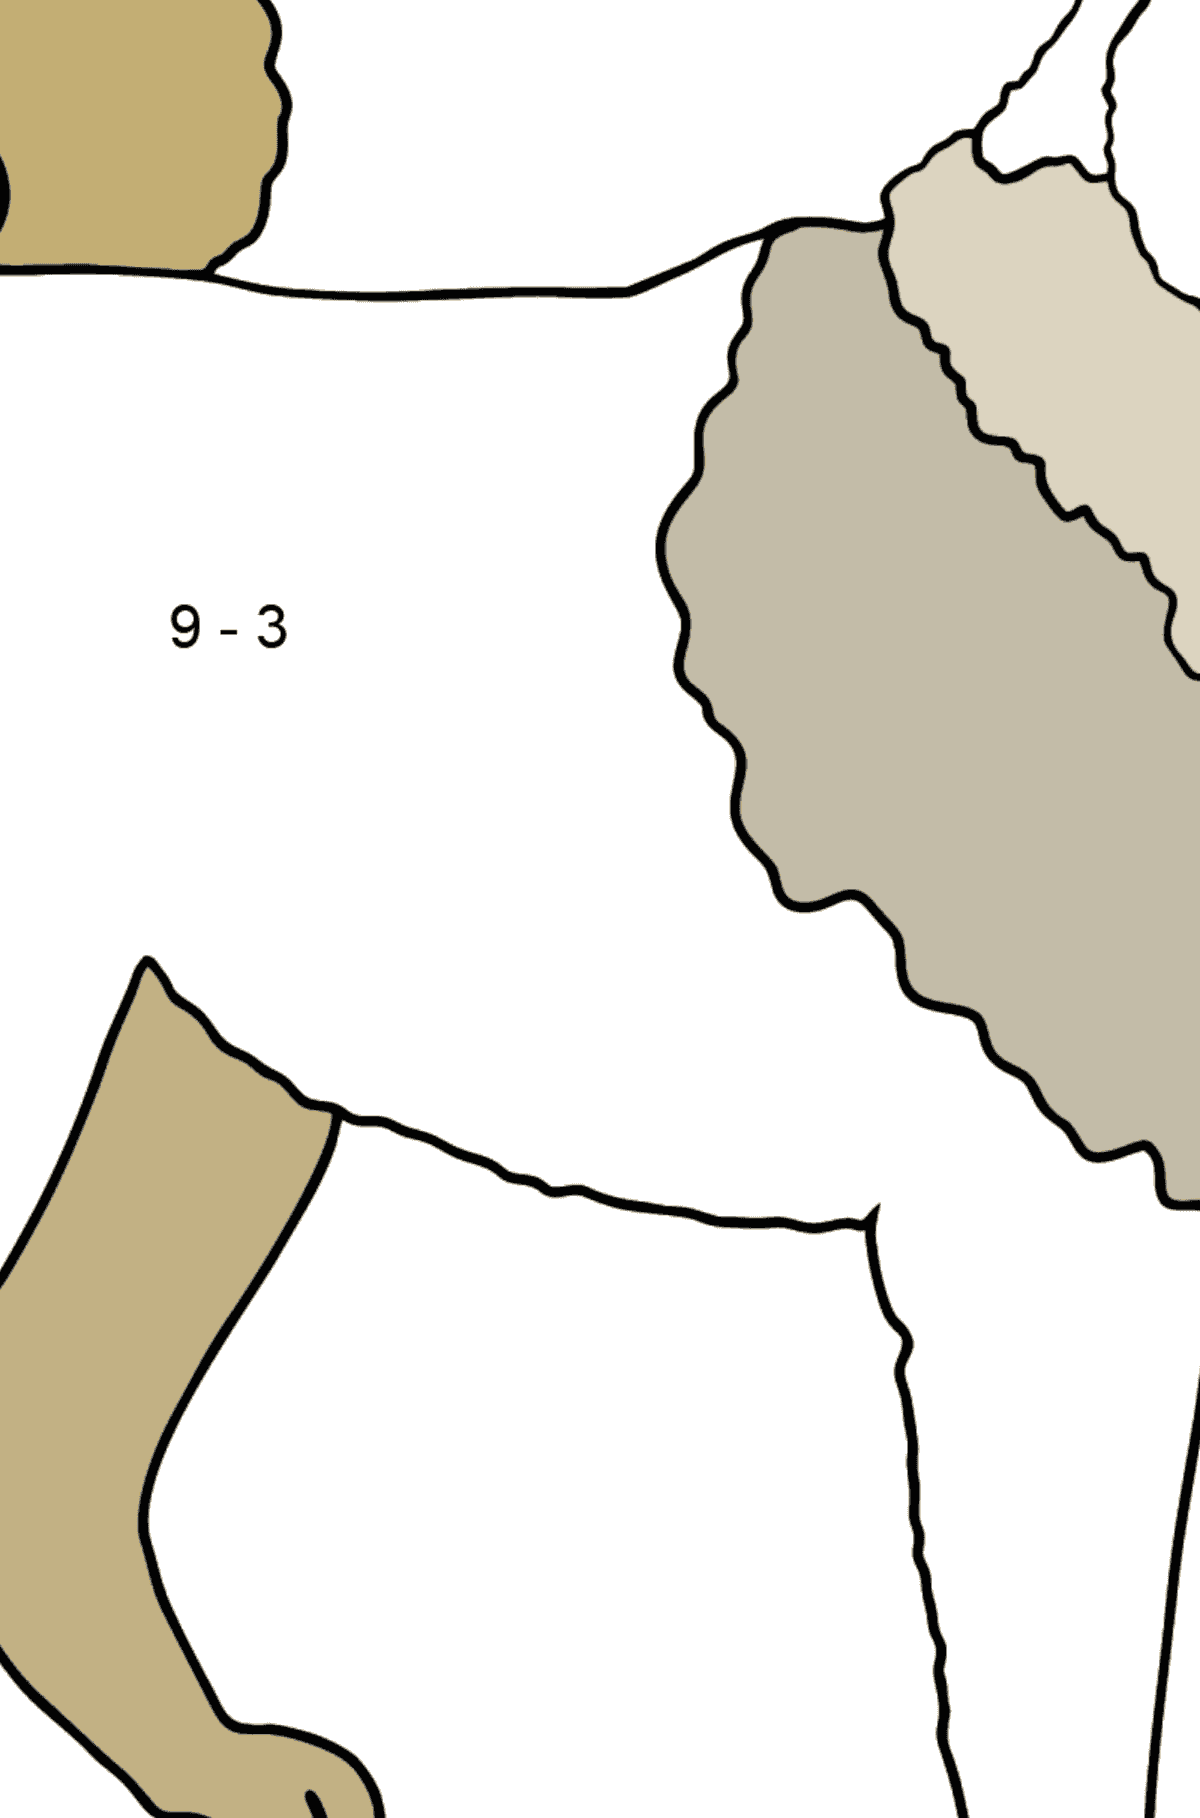 Siberian Husky coloring page - Math Coloring - Subtraction for Kids